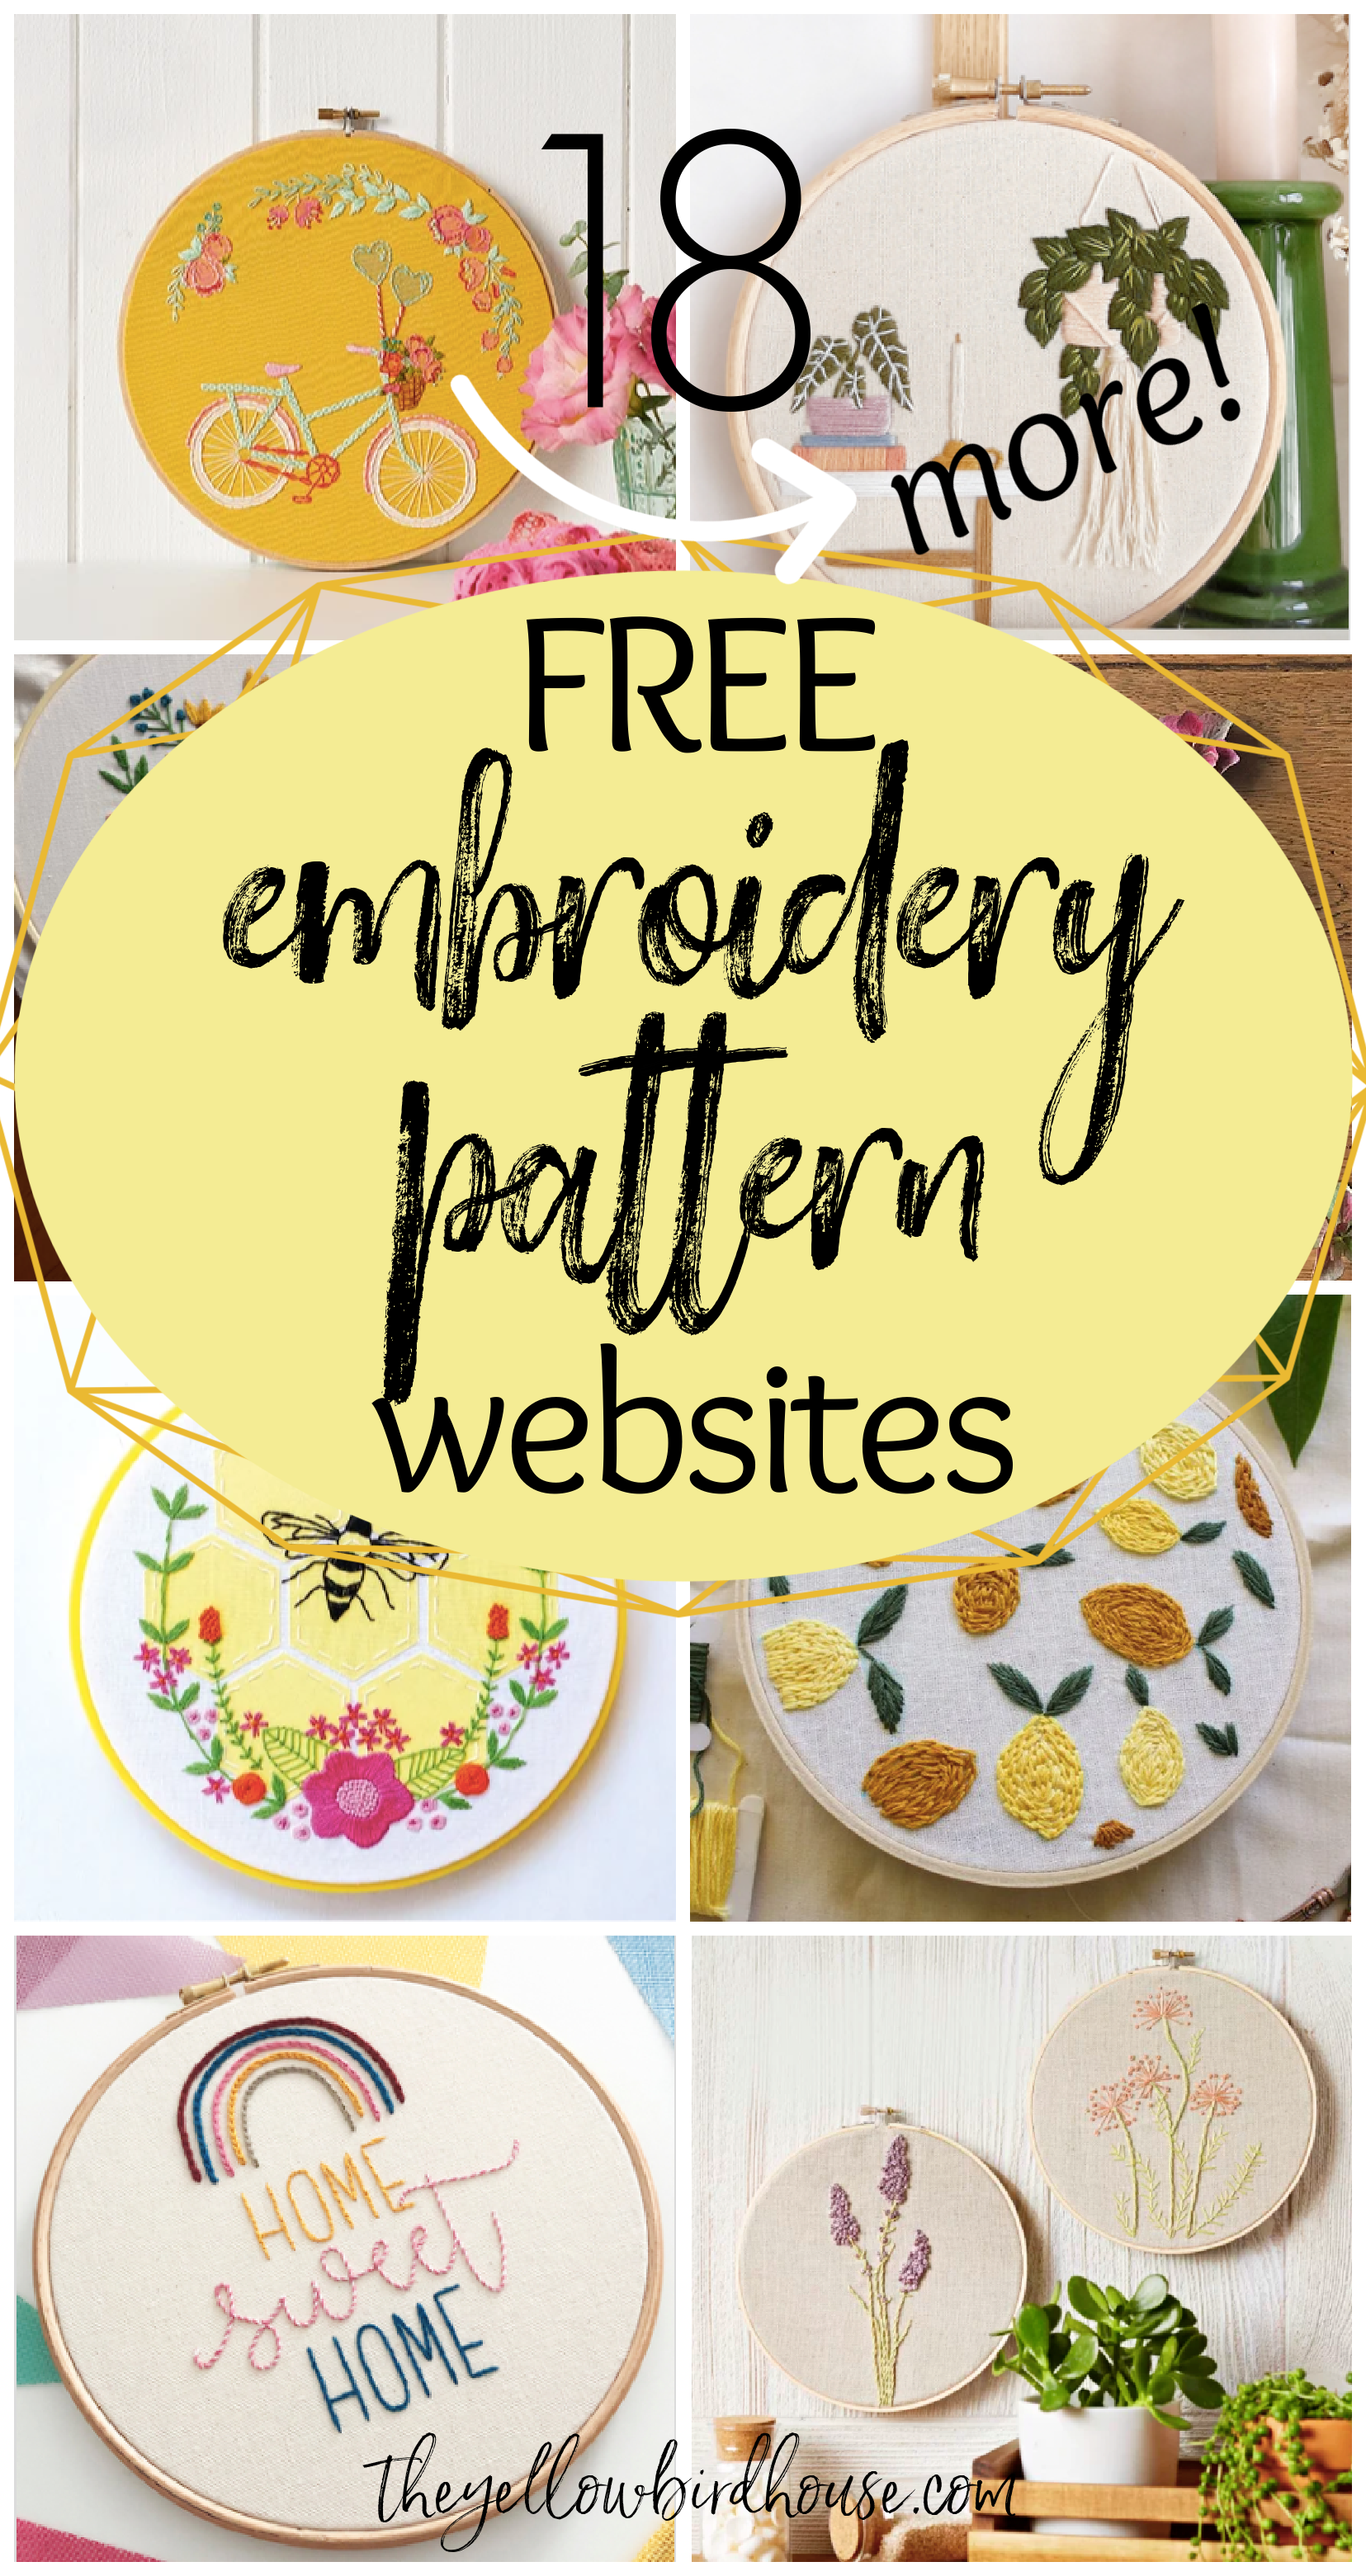 20 More Websites with Free Embroidery Patterns   The Yellow Birdhouse